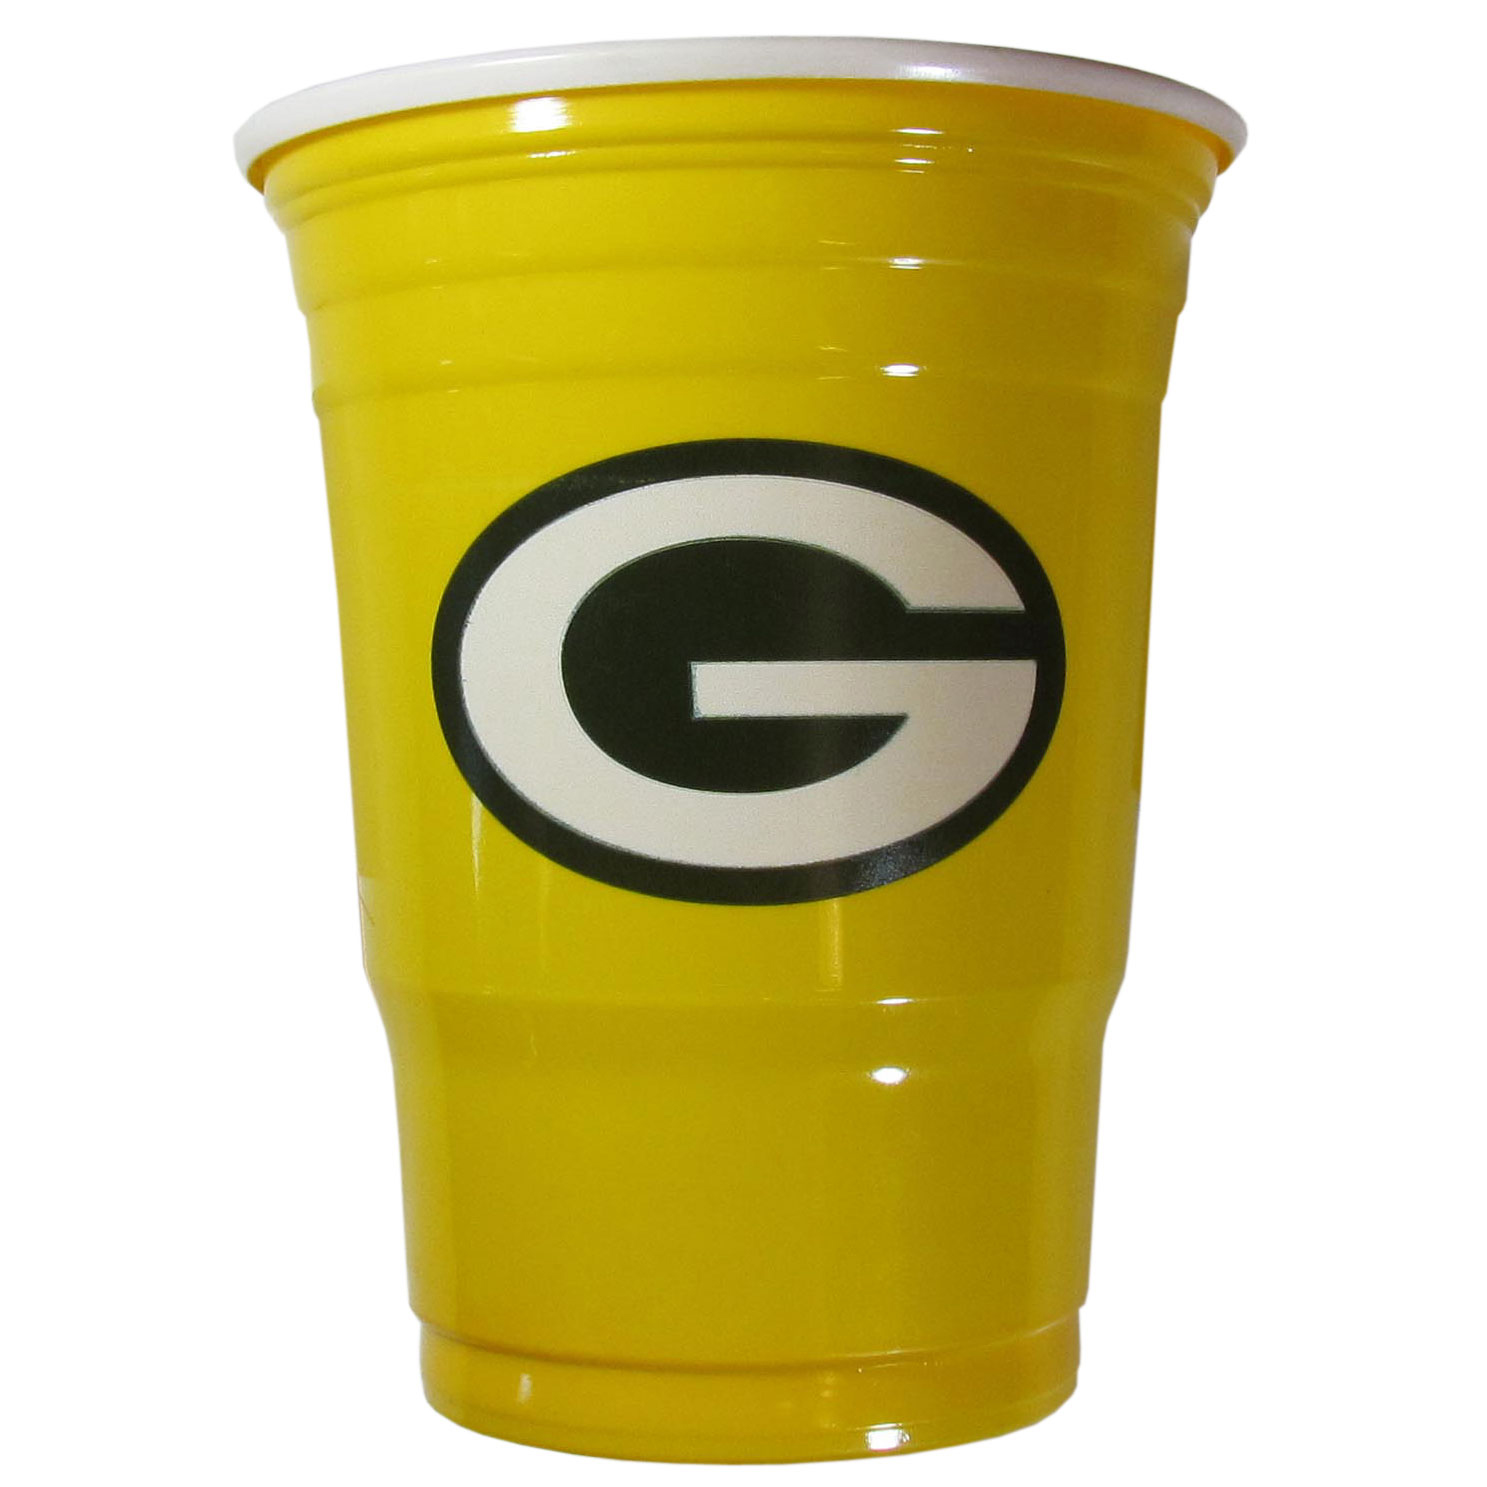 Green Bay Packers Plastic Game Day Cups 2 sleeves of 18 (36 Cups) - Our 18 ounce game day cups are what every tailgating or backyard events needs! The cups feature a big Green Bay Packers logo so you can show off your team pride. The popular 18 ounce size is perfect for drinks or ping pong balls! 2 sleeves of 18 cups, 36 cups in total.